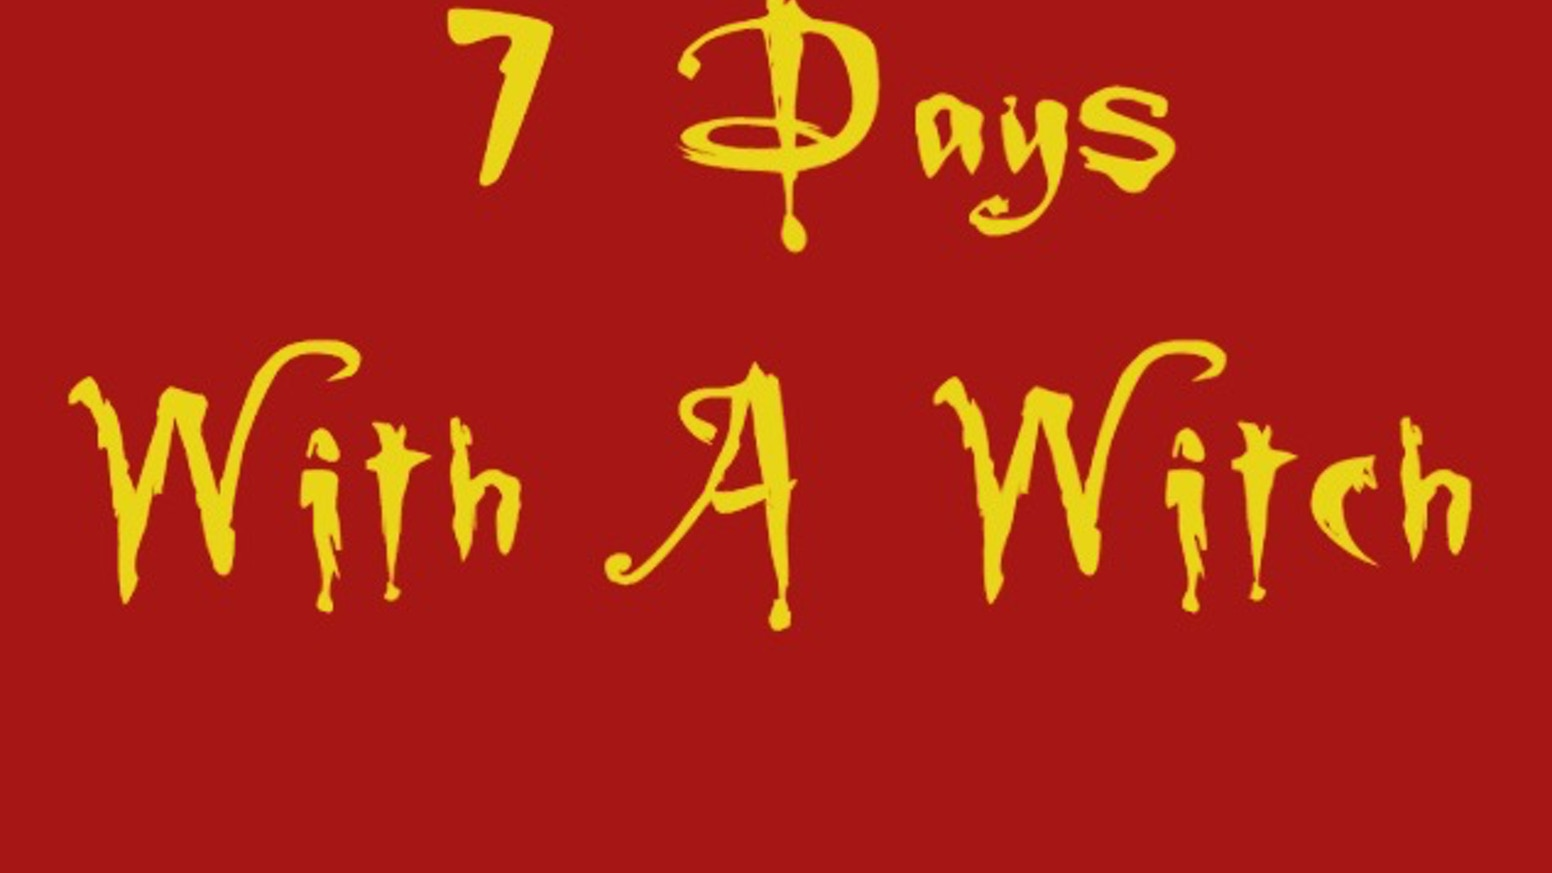 7 Days With A Witch   A True Story by Don Allen Jr  by Don